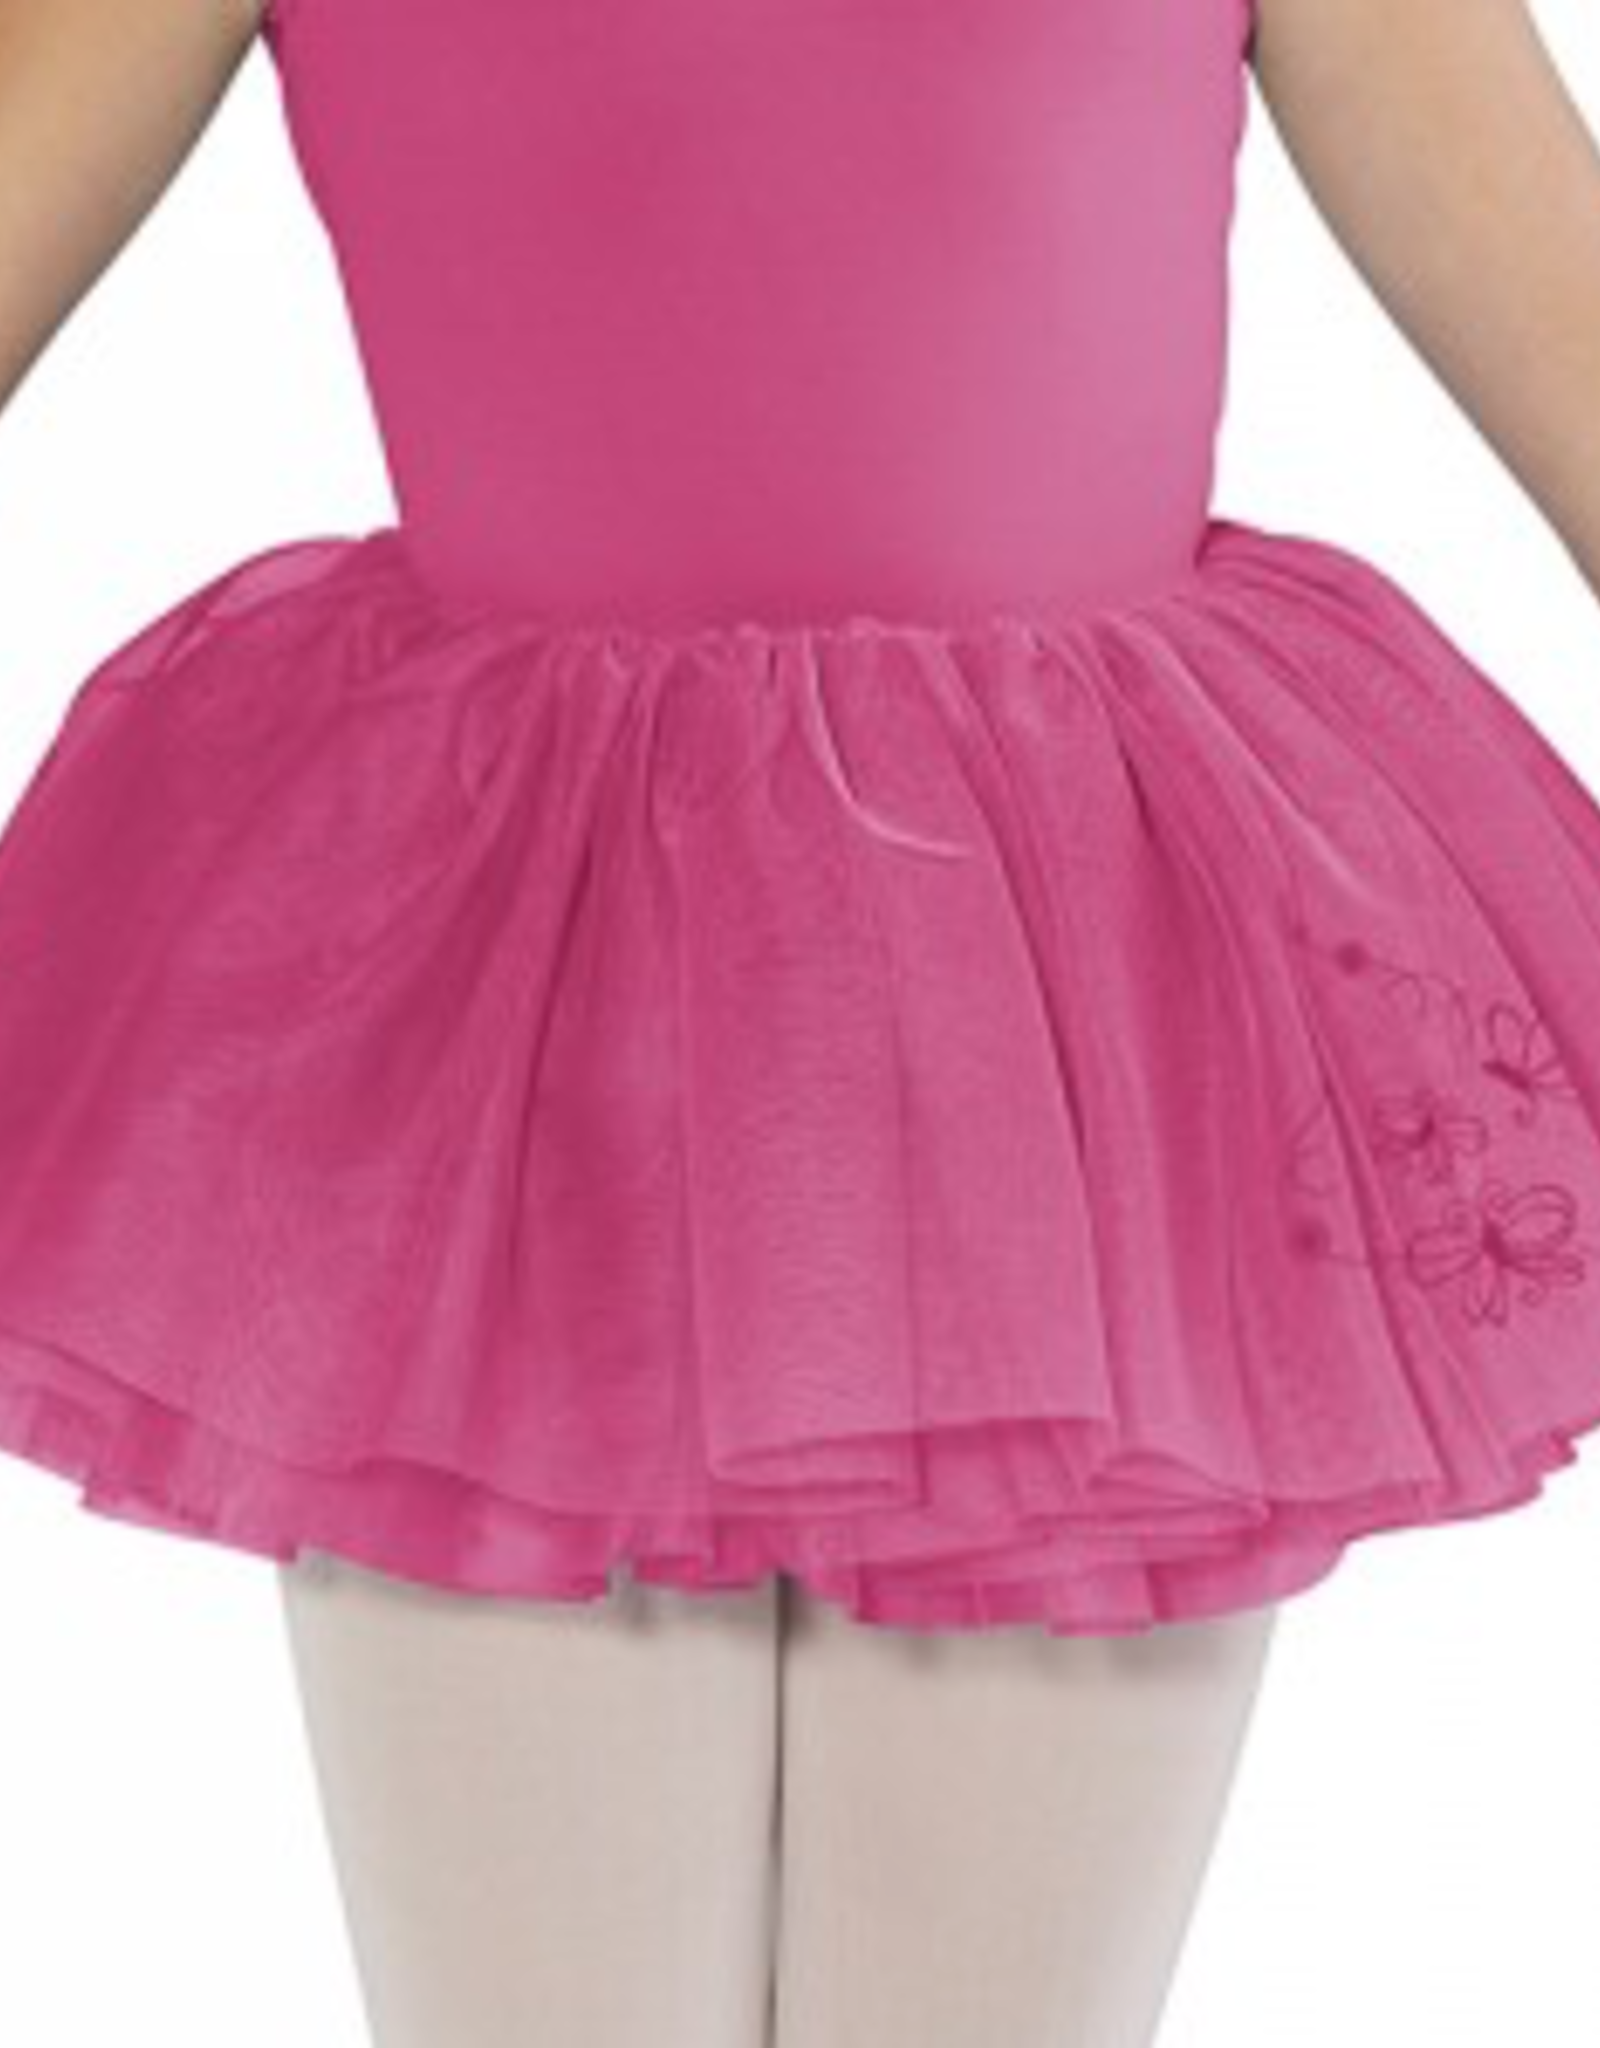 BLOCH PETALUDA BUTTERFLY TUTU SKIRT (CR3501)